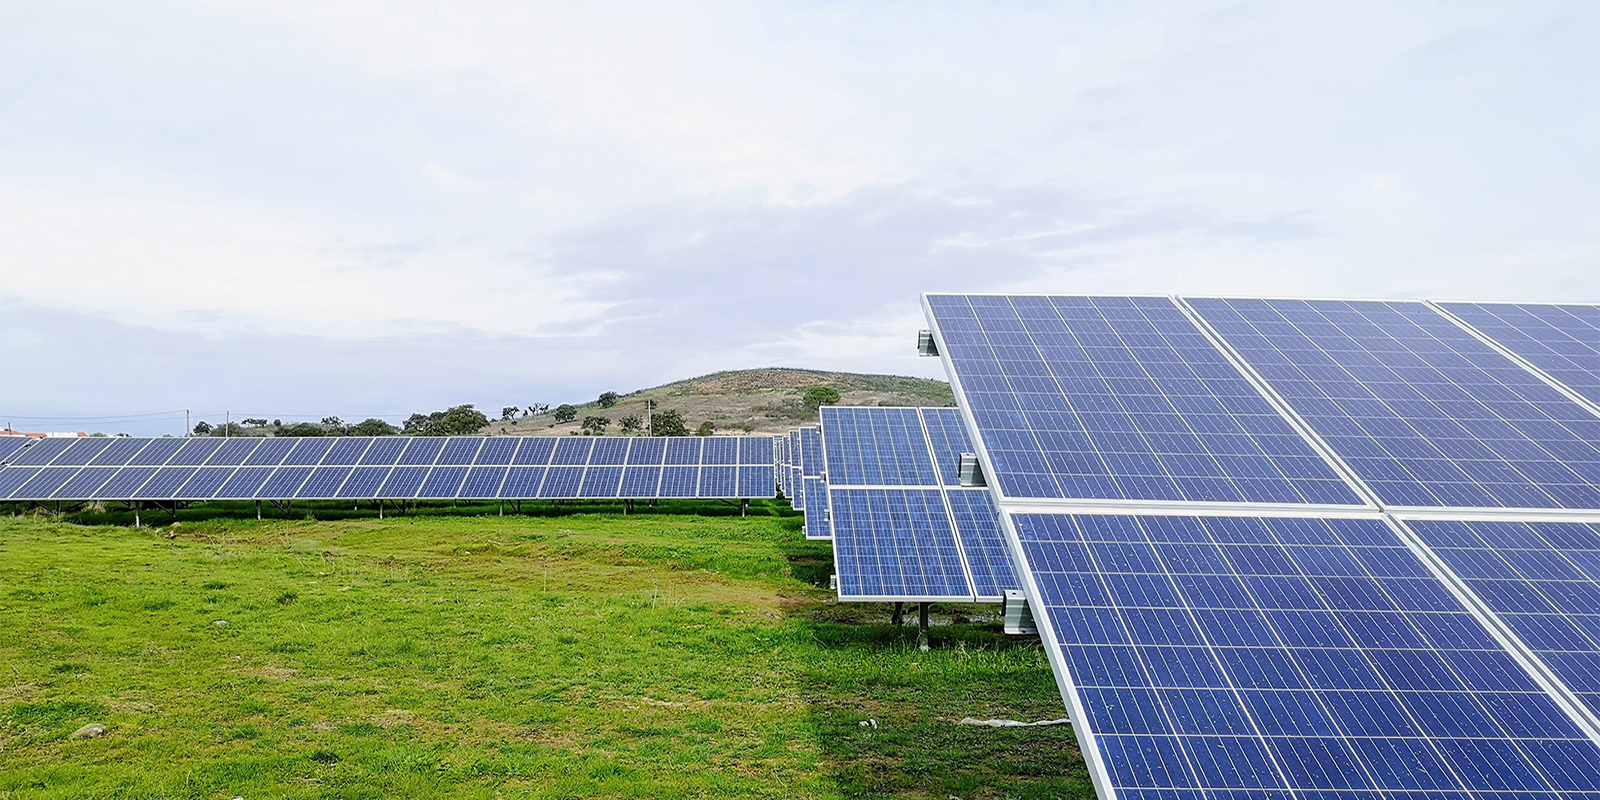 Image of Solar Panels in Field